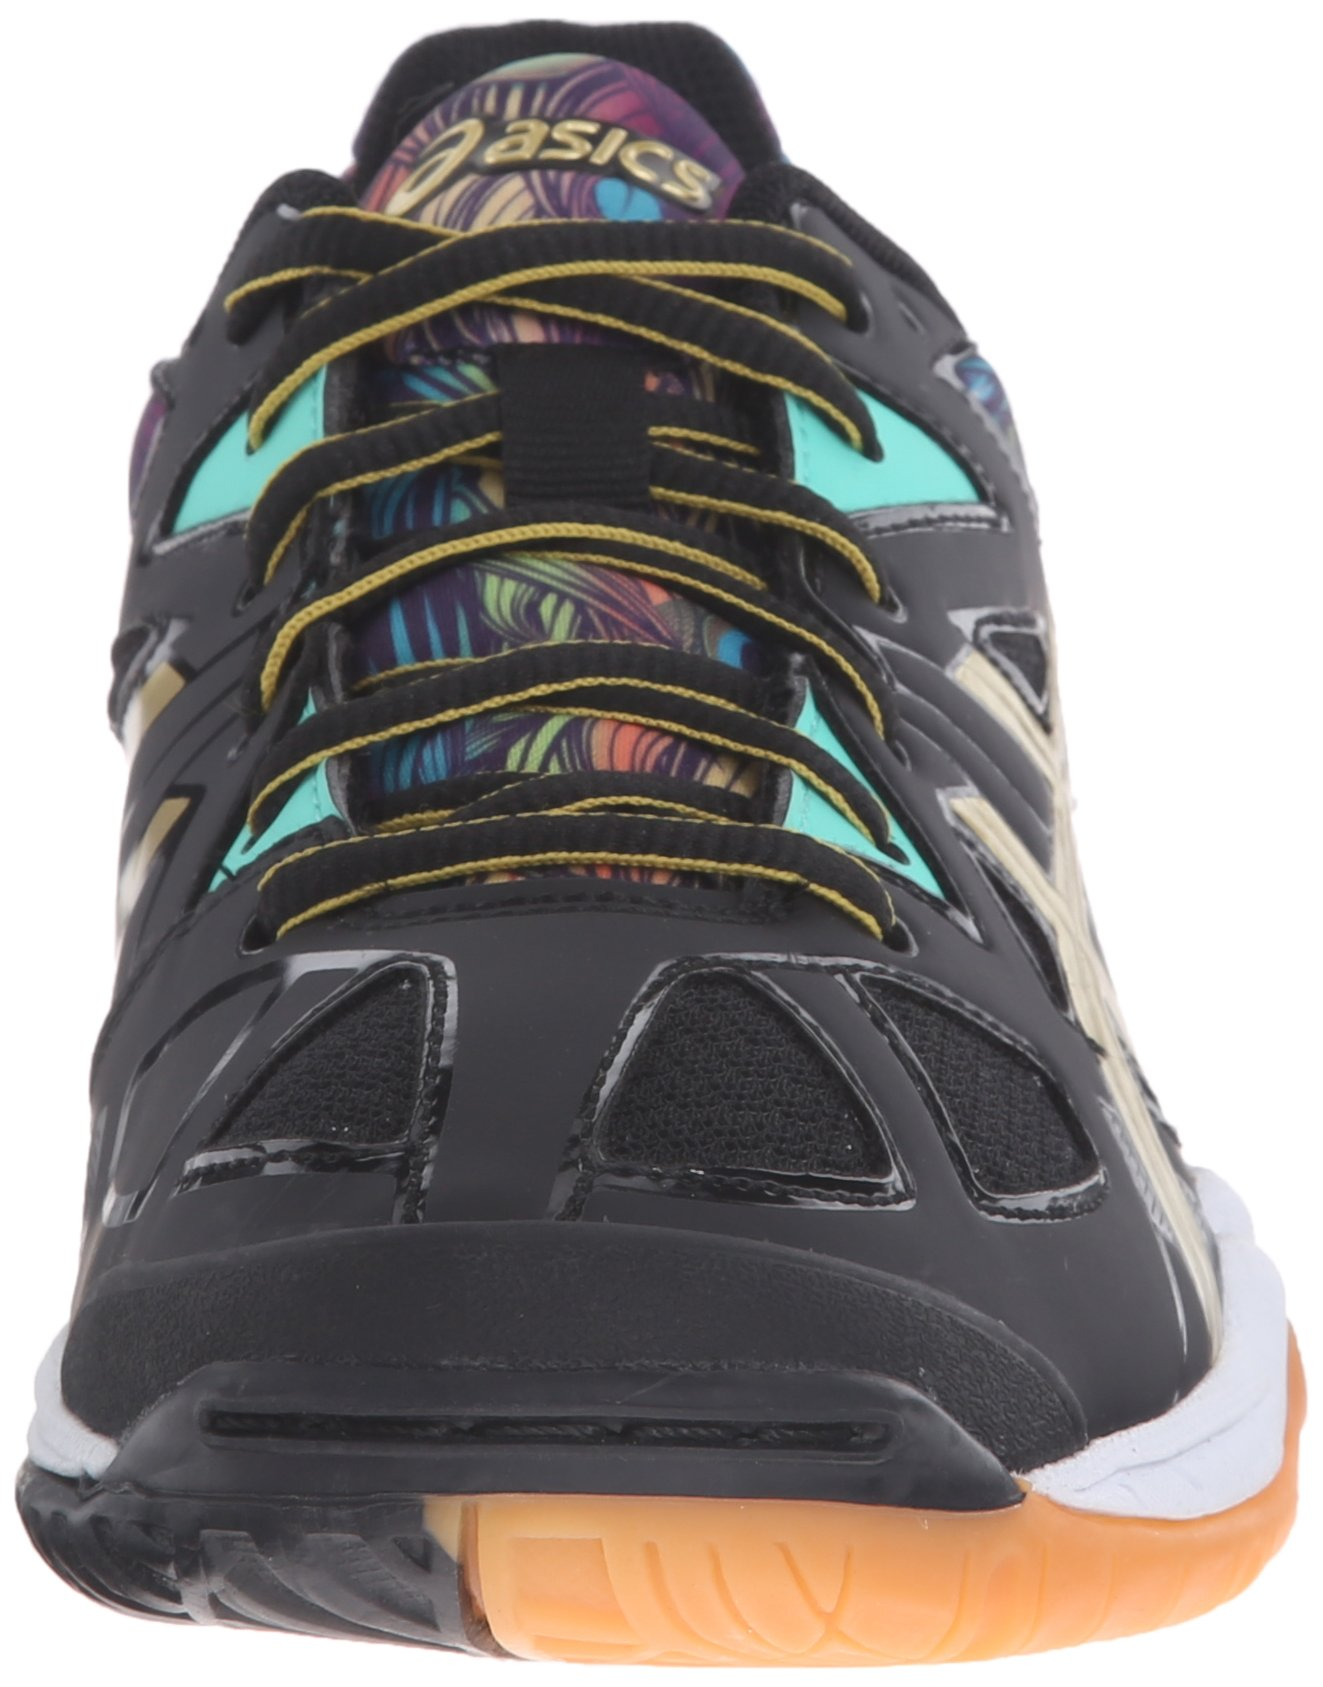 c23eb39a3 ASICS Women's Gel-Tactic Volleyball Shoe, Black/Gold/Electric Green, 10.5 M  US - B554N.9094 < Volleyball < Clothing, Shoes & Jewelry - tibs